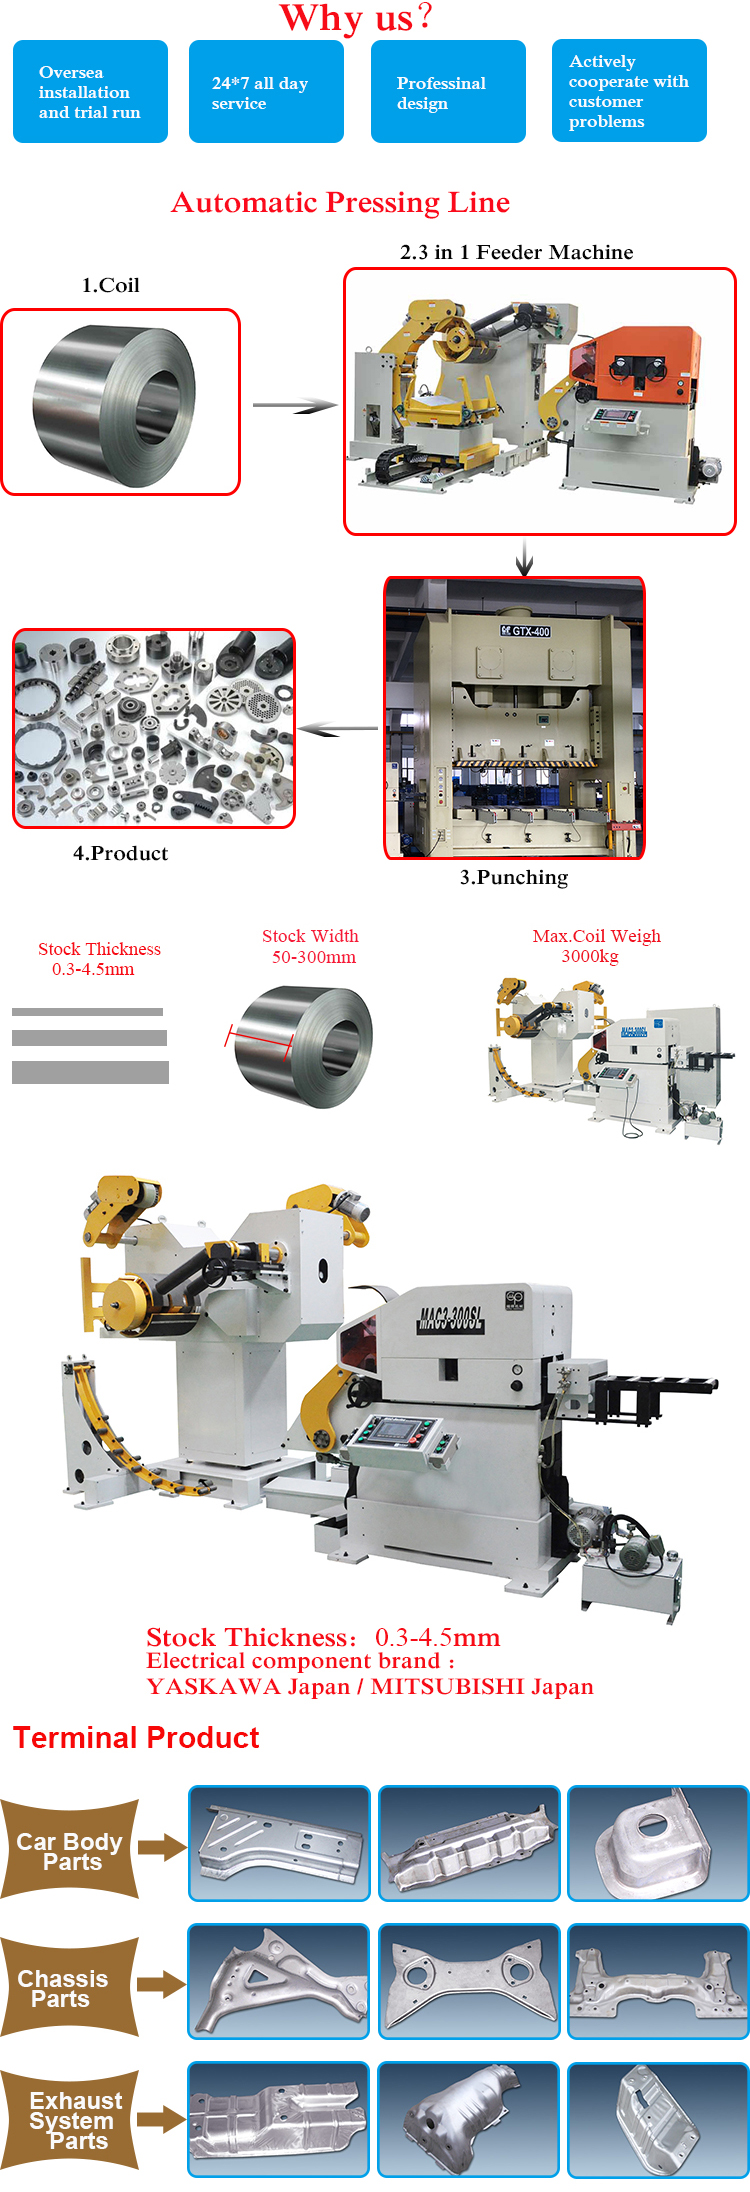 Pneumatic / Hydraulic 3 in 1 stamping periphery NC servo decoiler straightener feeder for home appliances making machine